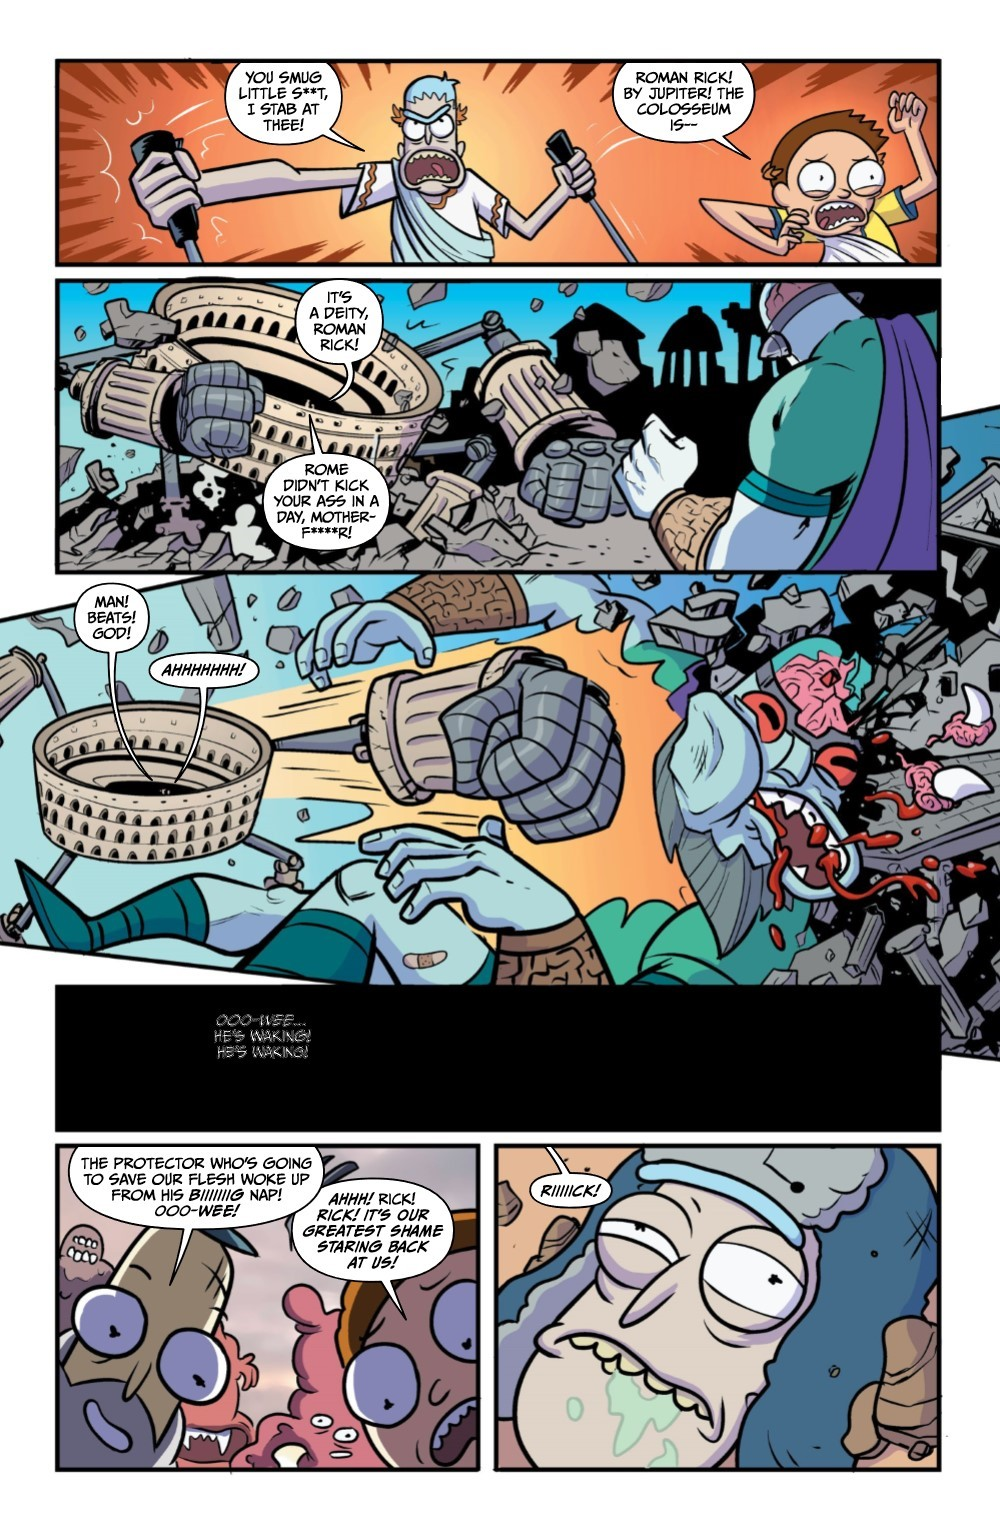 RM-RNH-2-REFERENCE-05 ComicList Previews: RICK AND MORTY RICK'S NEW HAT #2